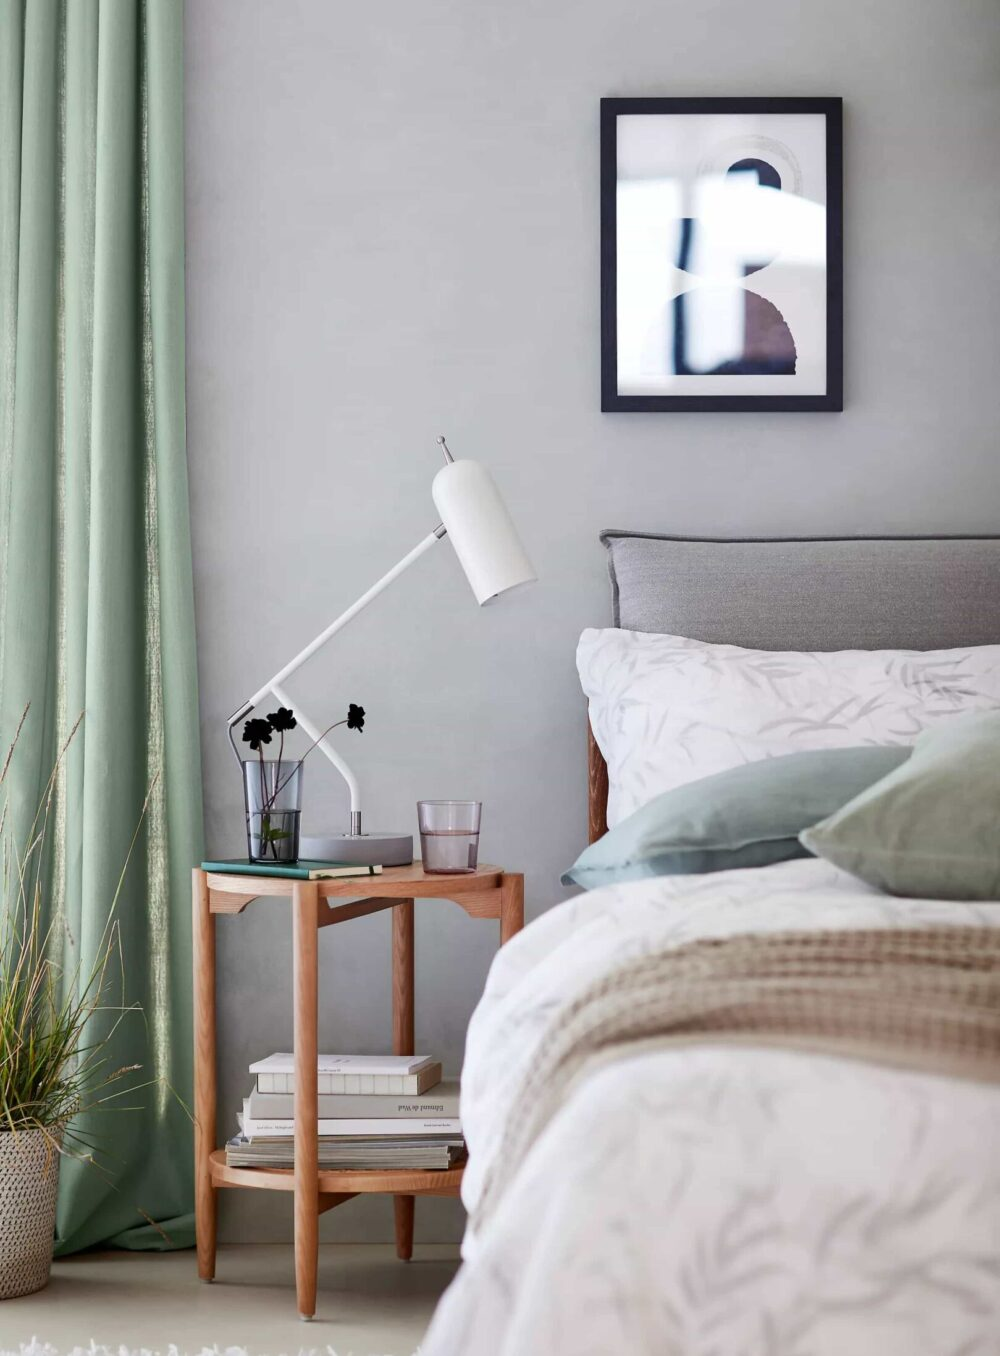 26 Stylish Everyday Pieces at ANYDAY Price by John Lewis